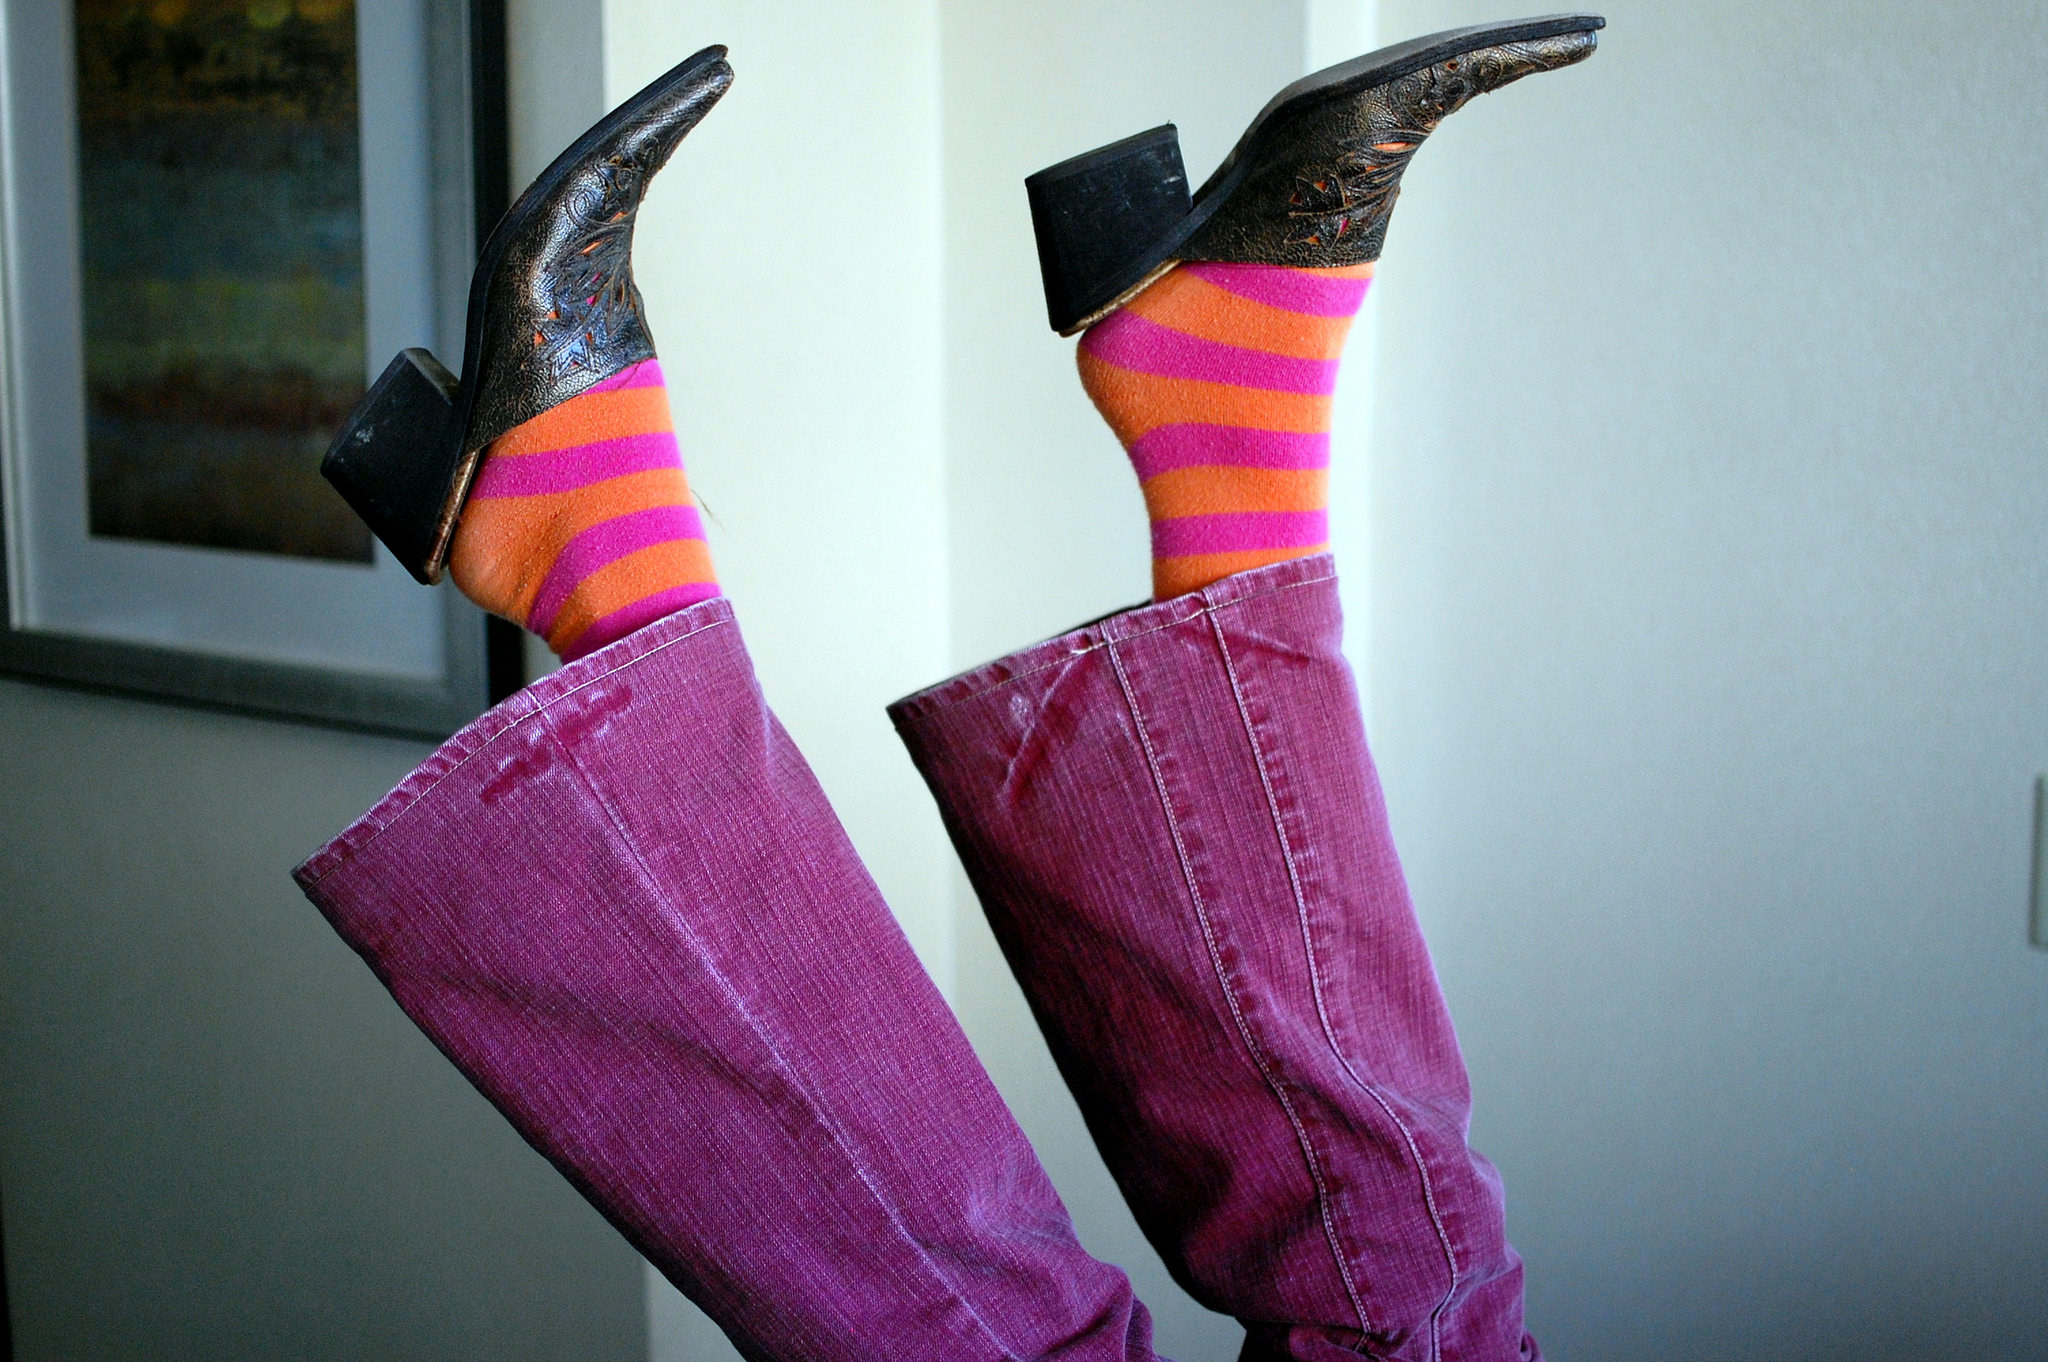 pink orange striped socks pink flare leg jeans mules daily outfit blog ootd whatiwore2day